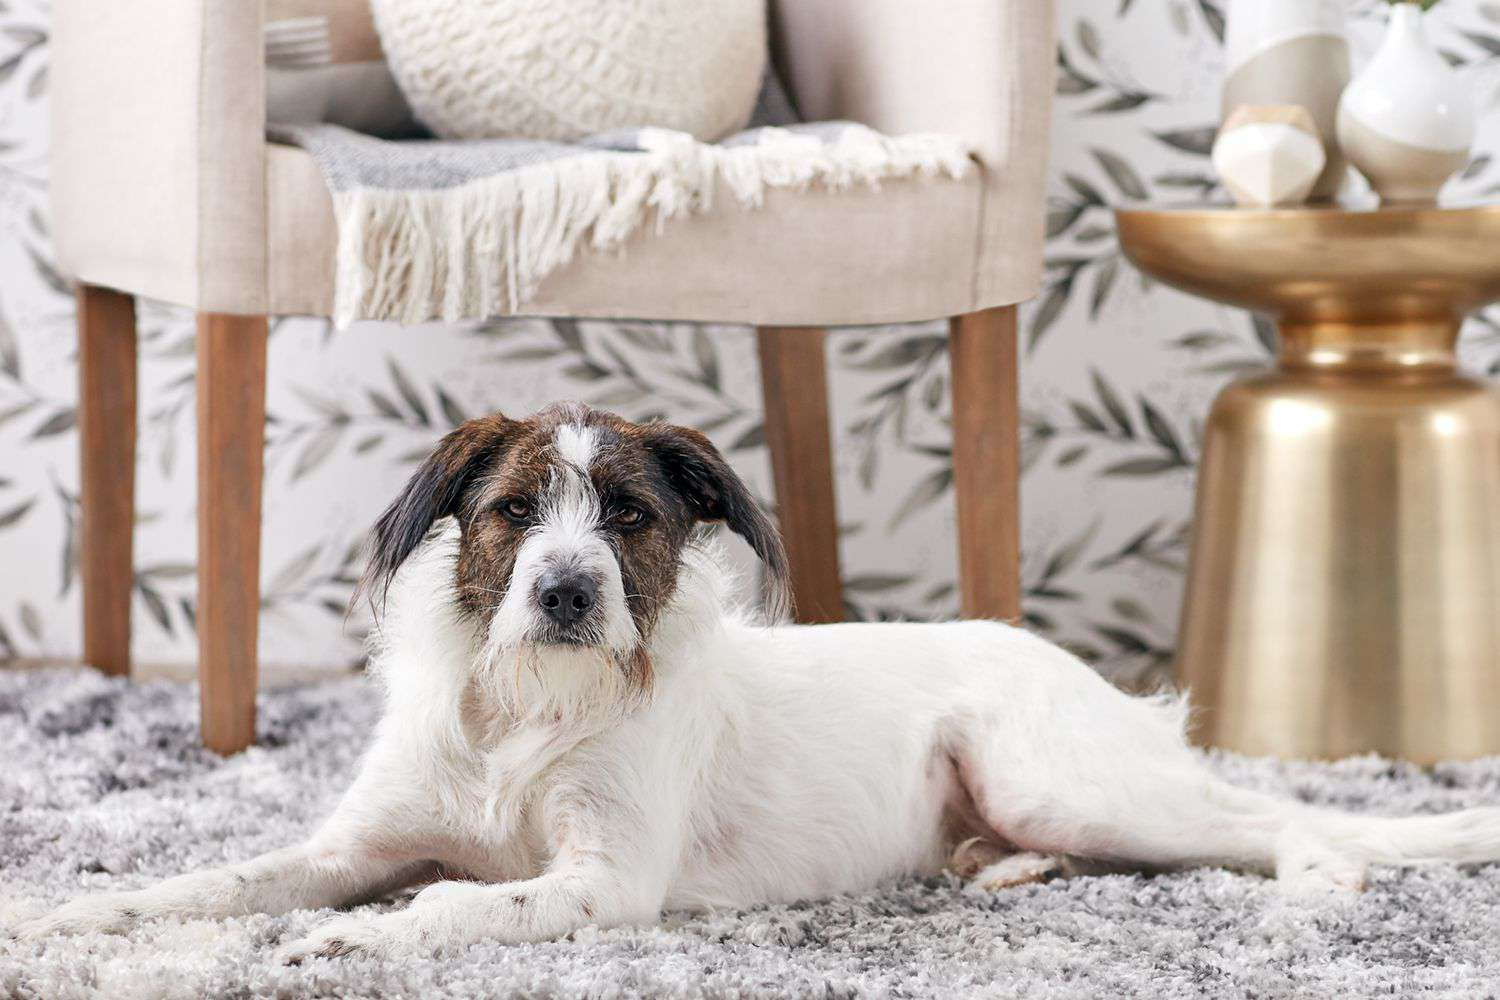 Brown and white mutt dog lying on rug